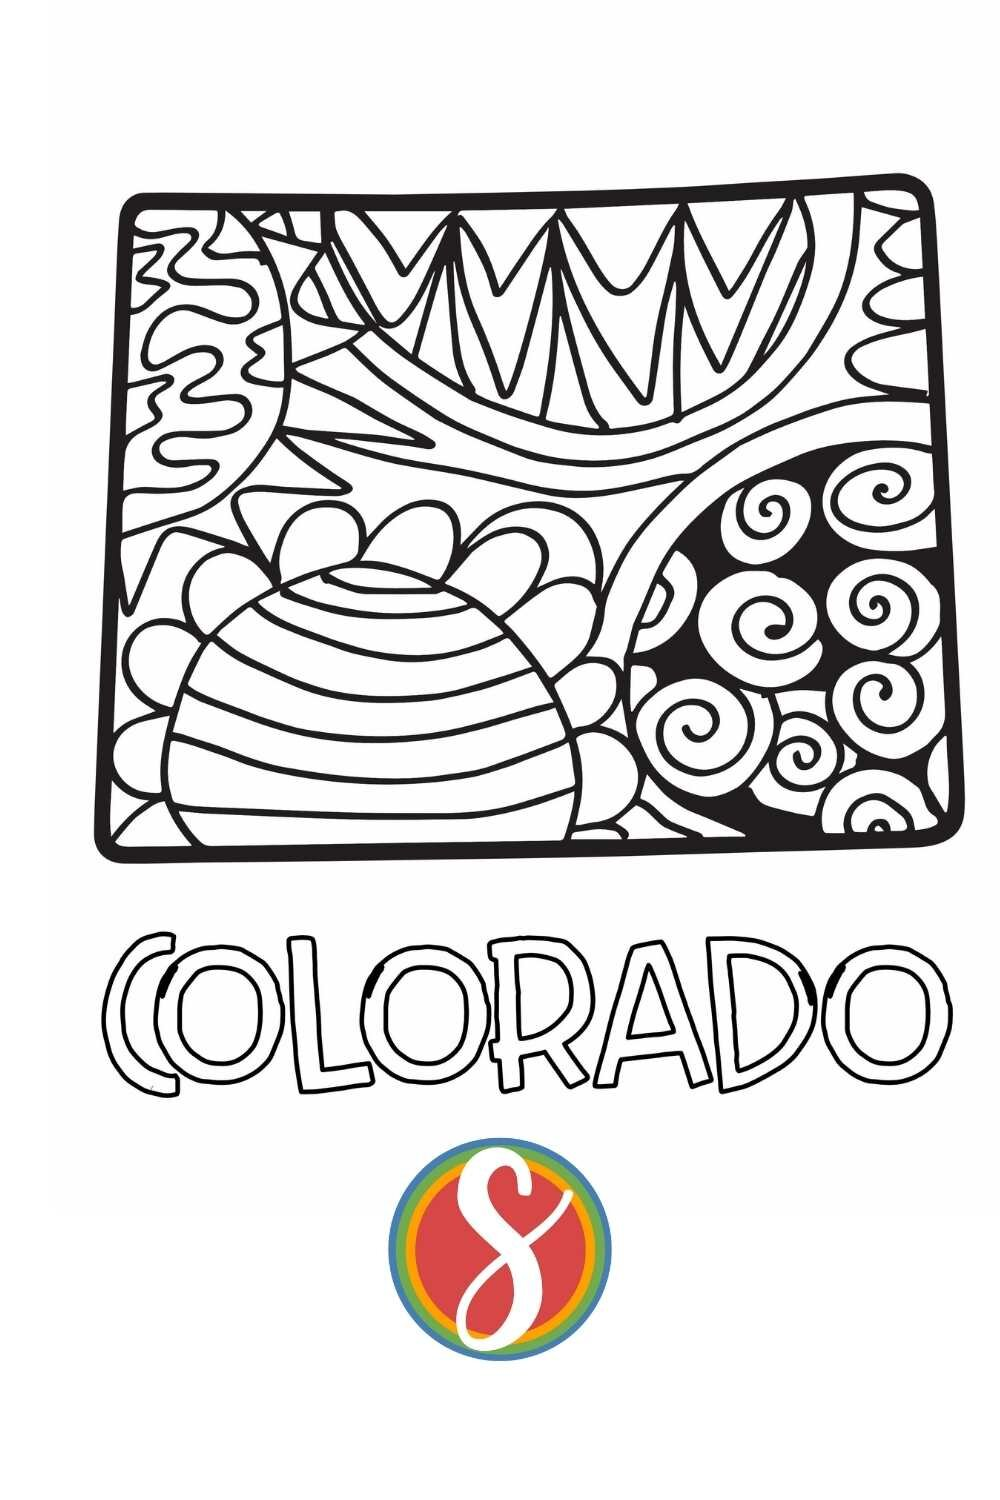 Free printable Colorado doodle coloring page from Stevie Doodles - print and also color this Colorado task sheet complimentary + find 1000's more complimentary printable color pages